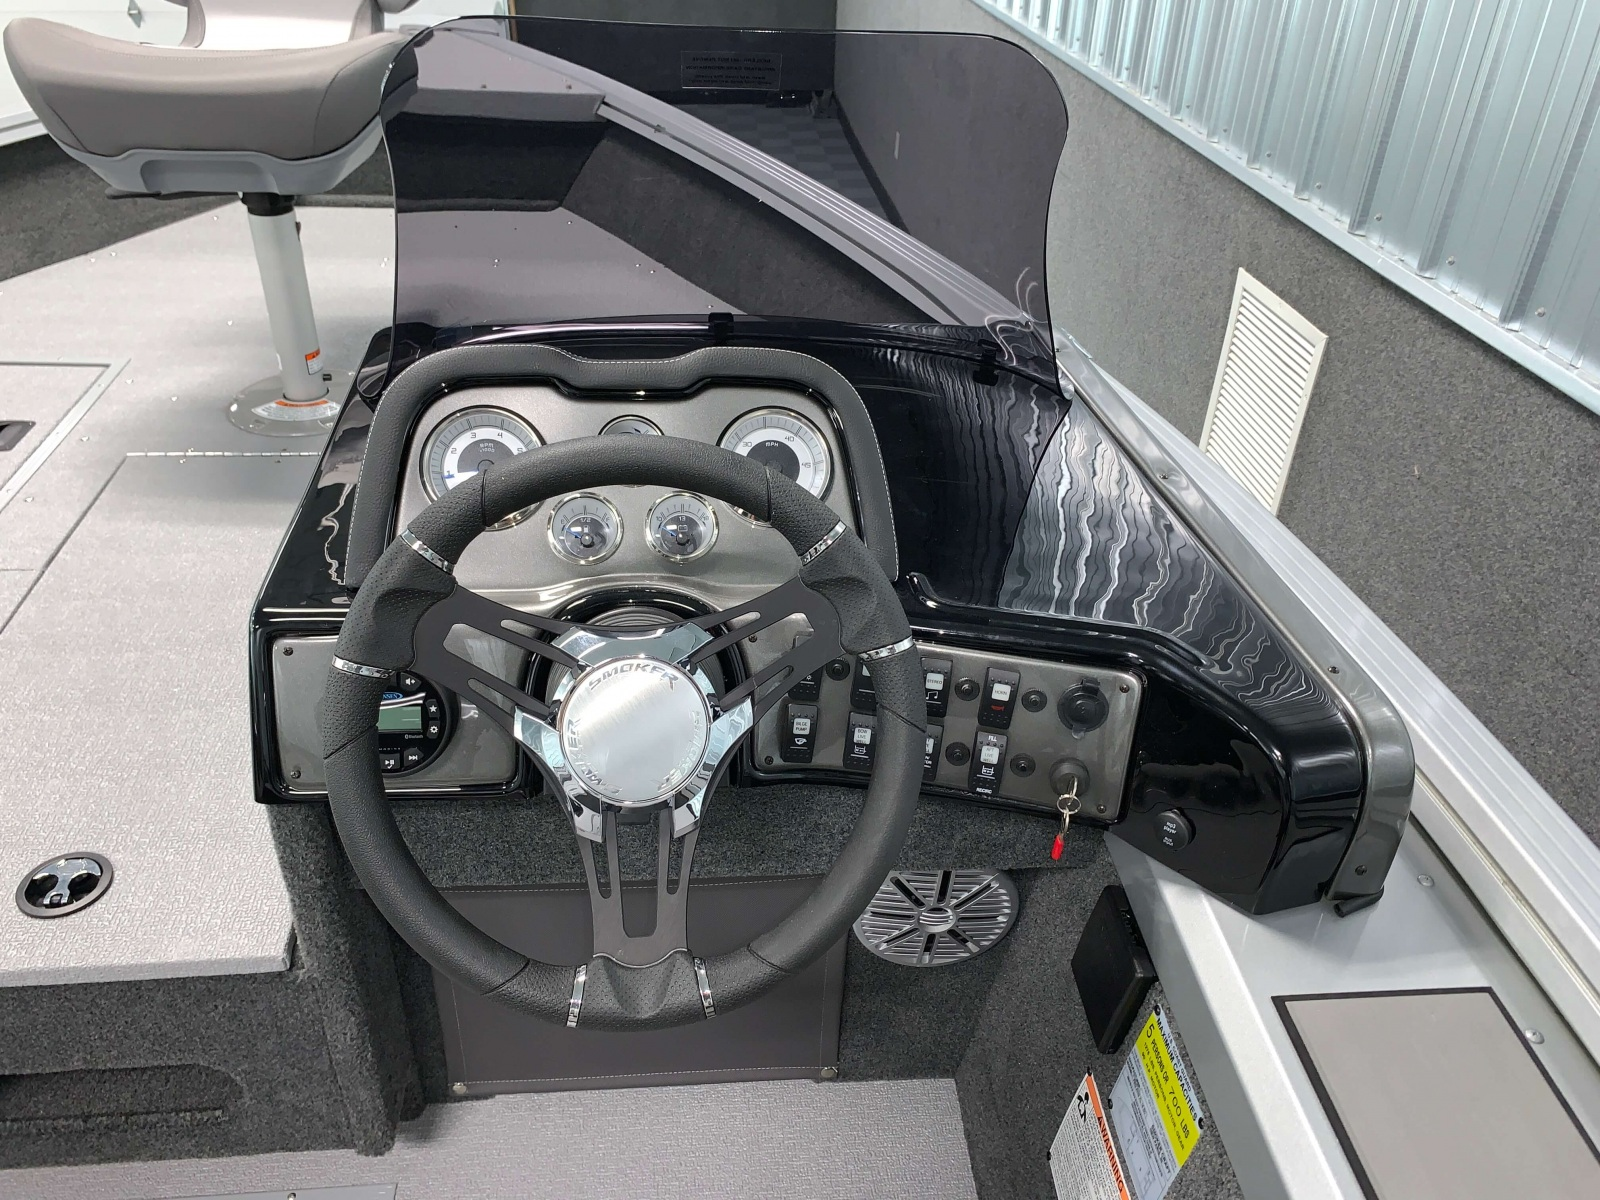 Drivers Console of the 2021 Smoker Craft 161 Pro Angler XL Fishing Boat